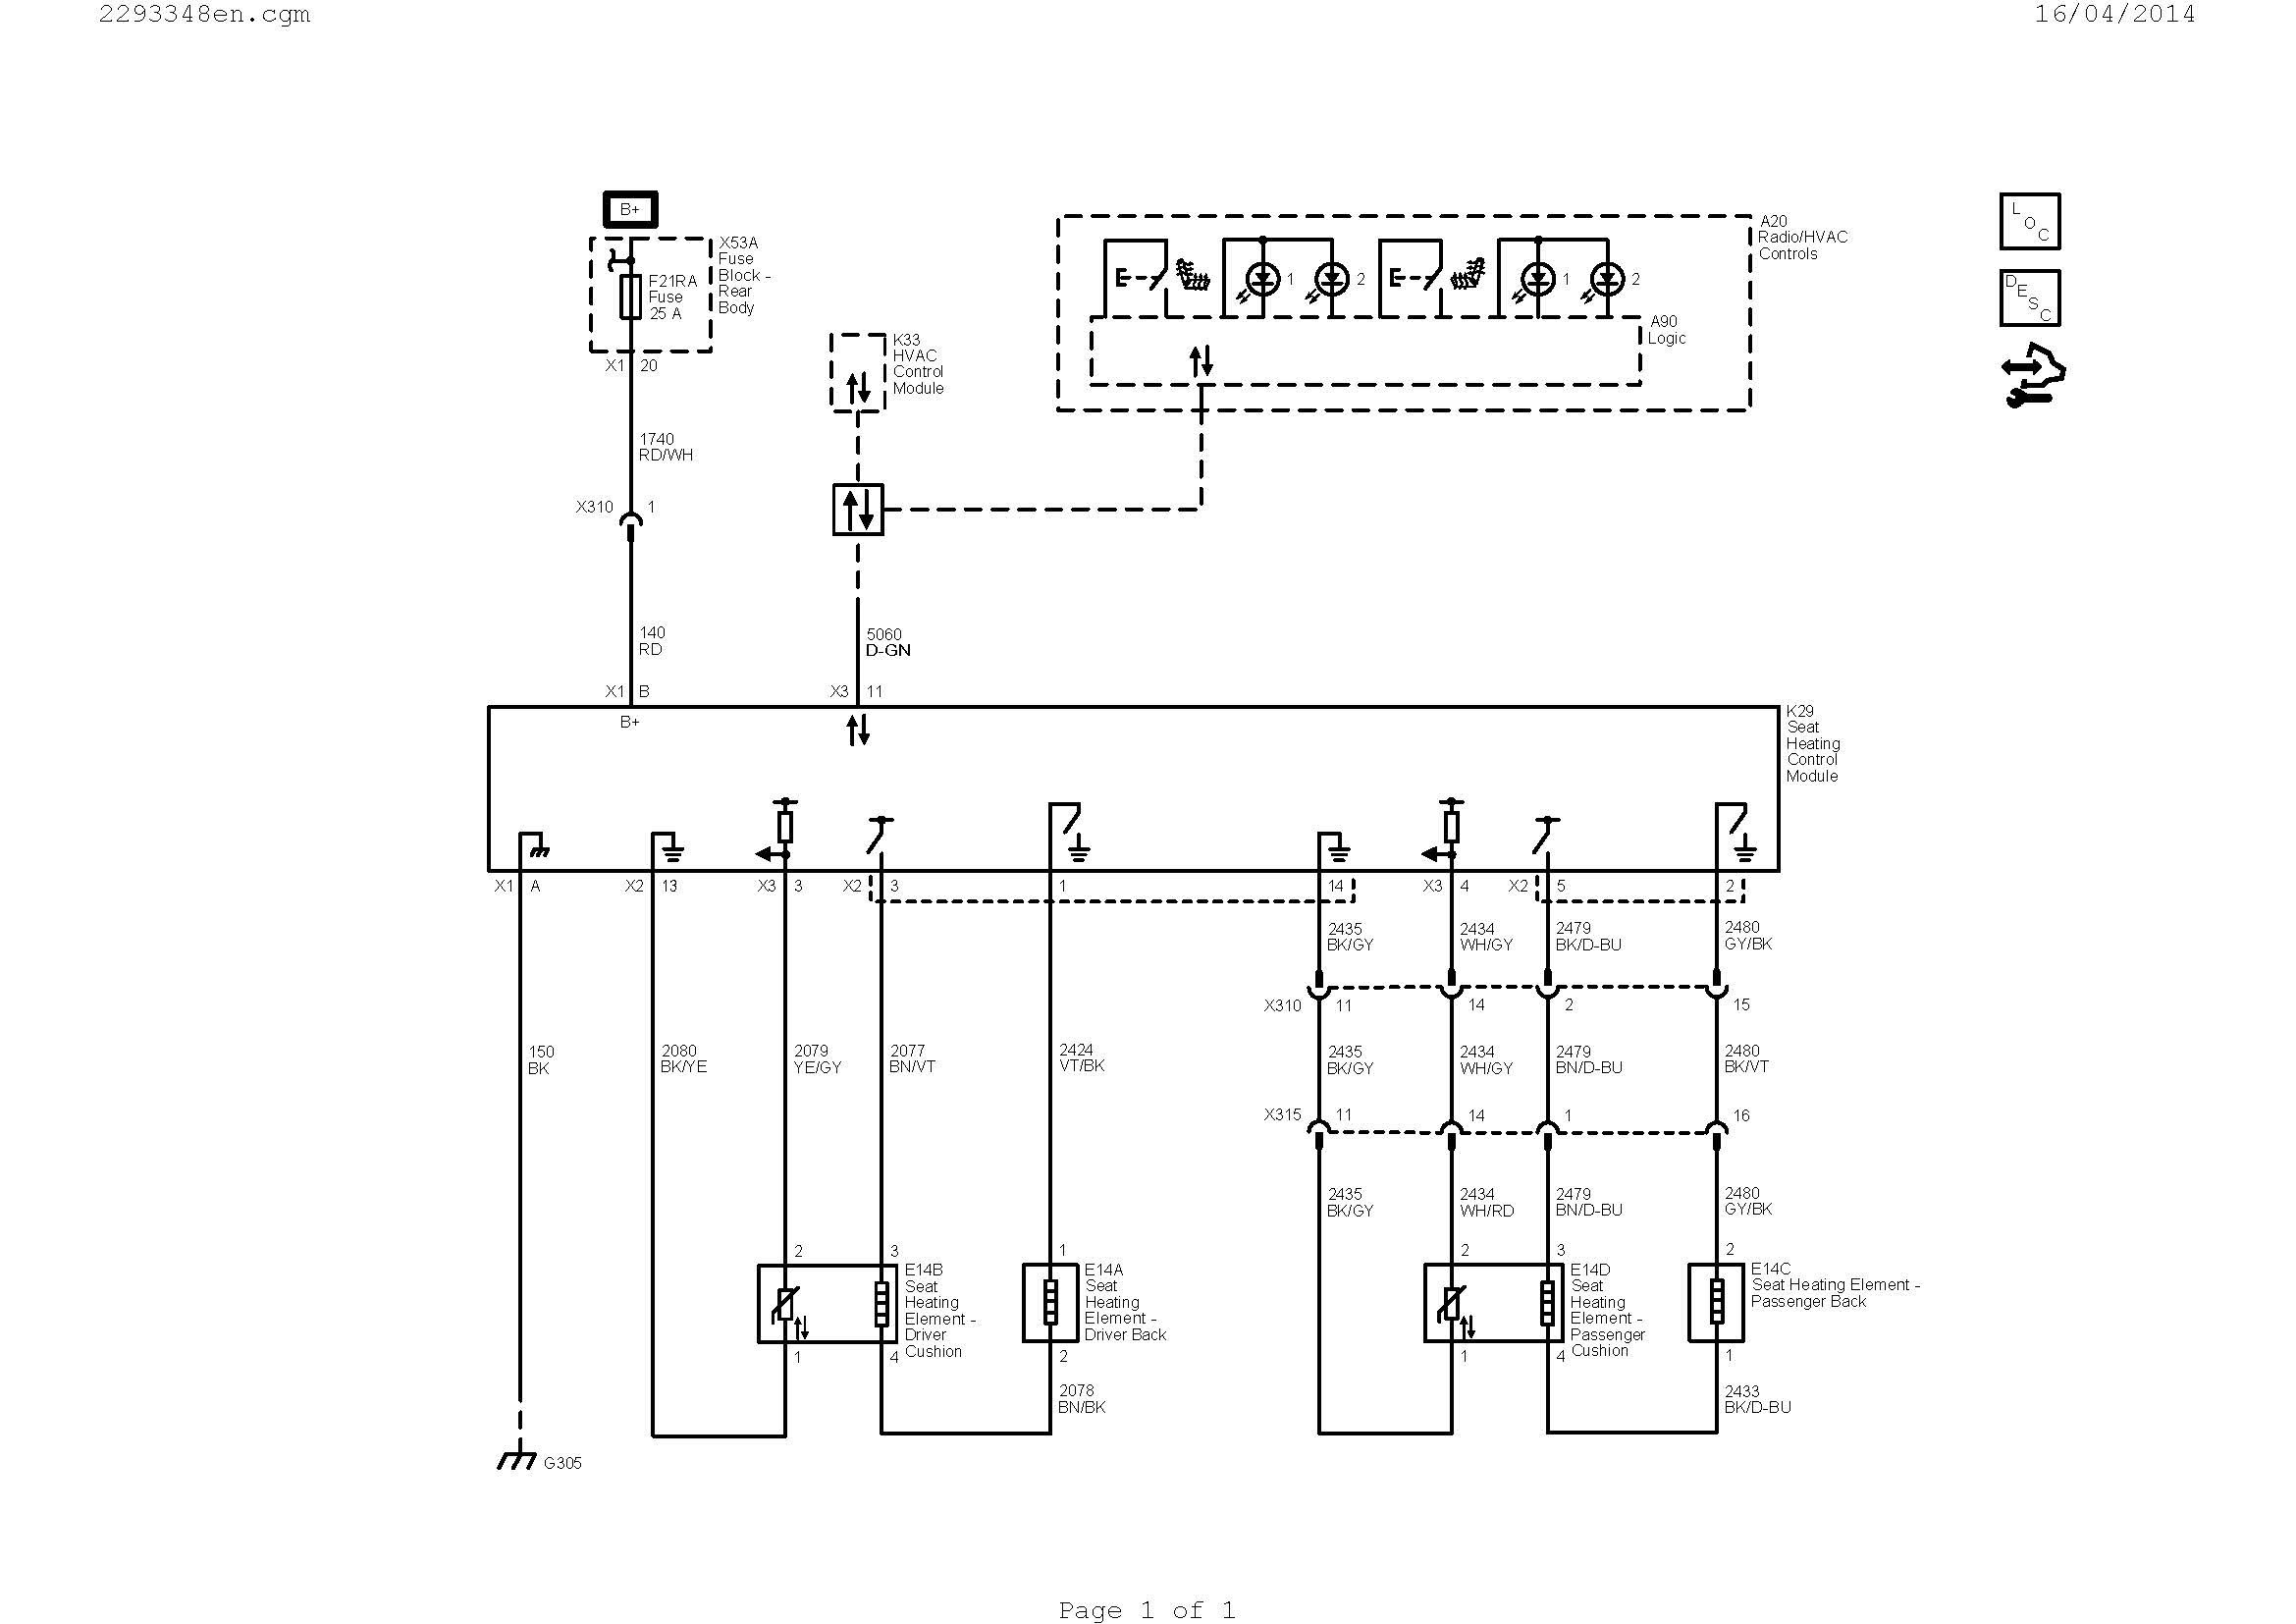 polaris ranger radio wiring diagram Collection-headphone wiring diagram Download understanding hvac wiring diagrams Download Diagram Websites Unique Hvac Diagram 0d DOWNLOAD Wiring Diagram 6-a